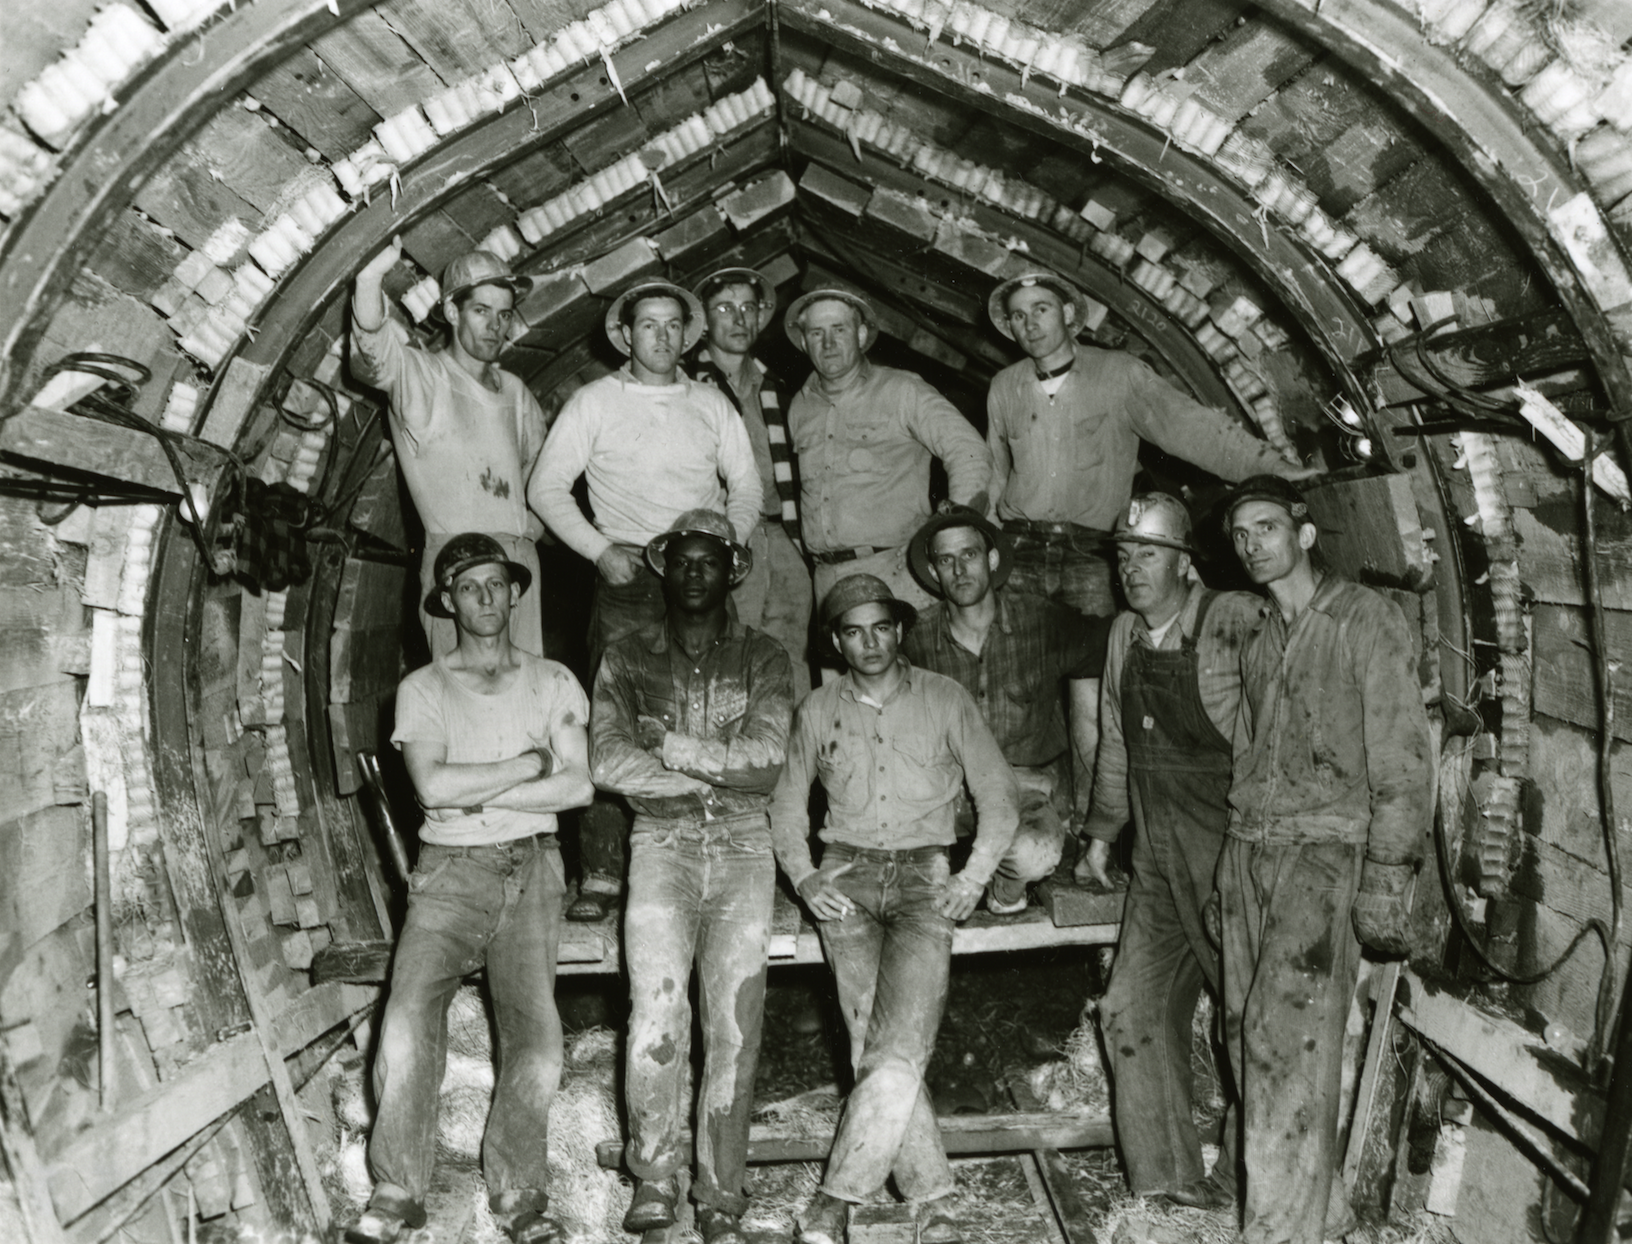 Unidentified workers excavating a section of Portland's sewer tunnels, ca. 1950. City of Portland Archives, A2005-005.59.122.